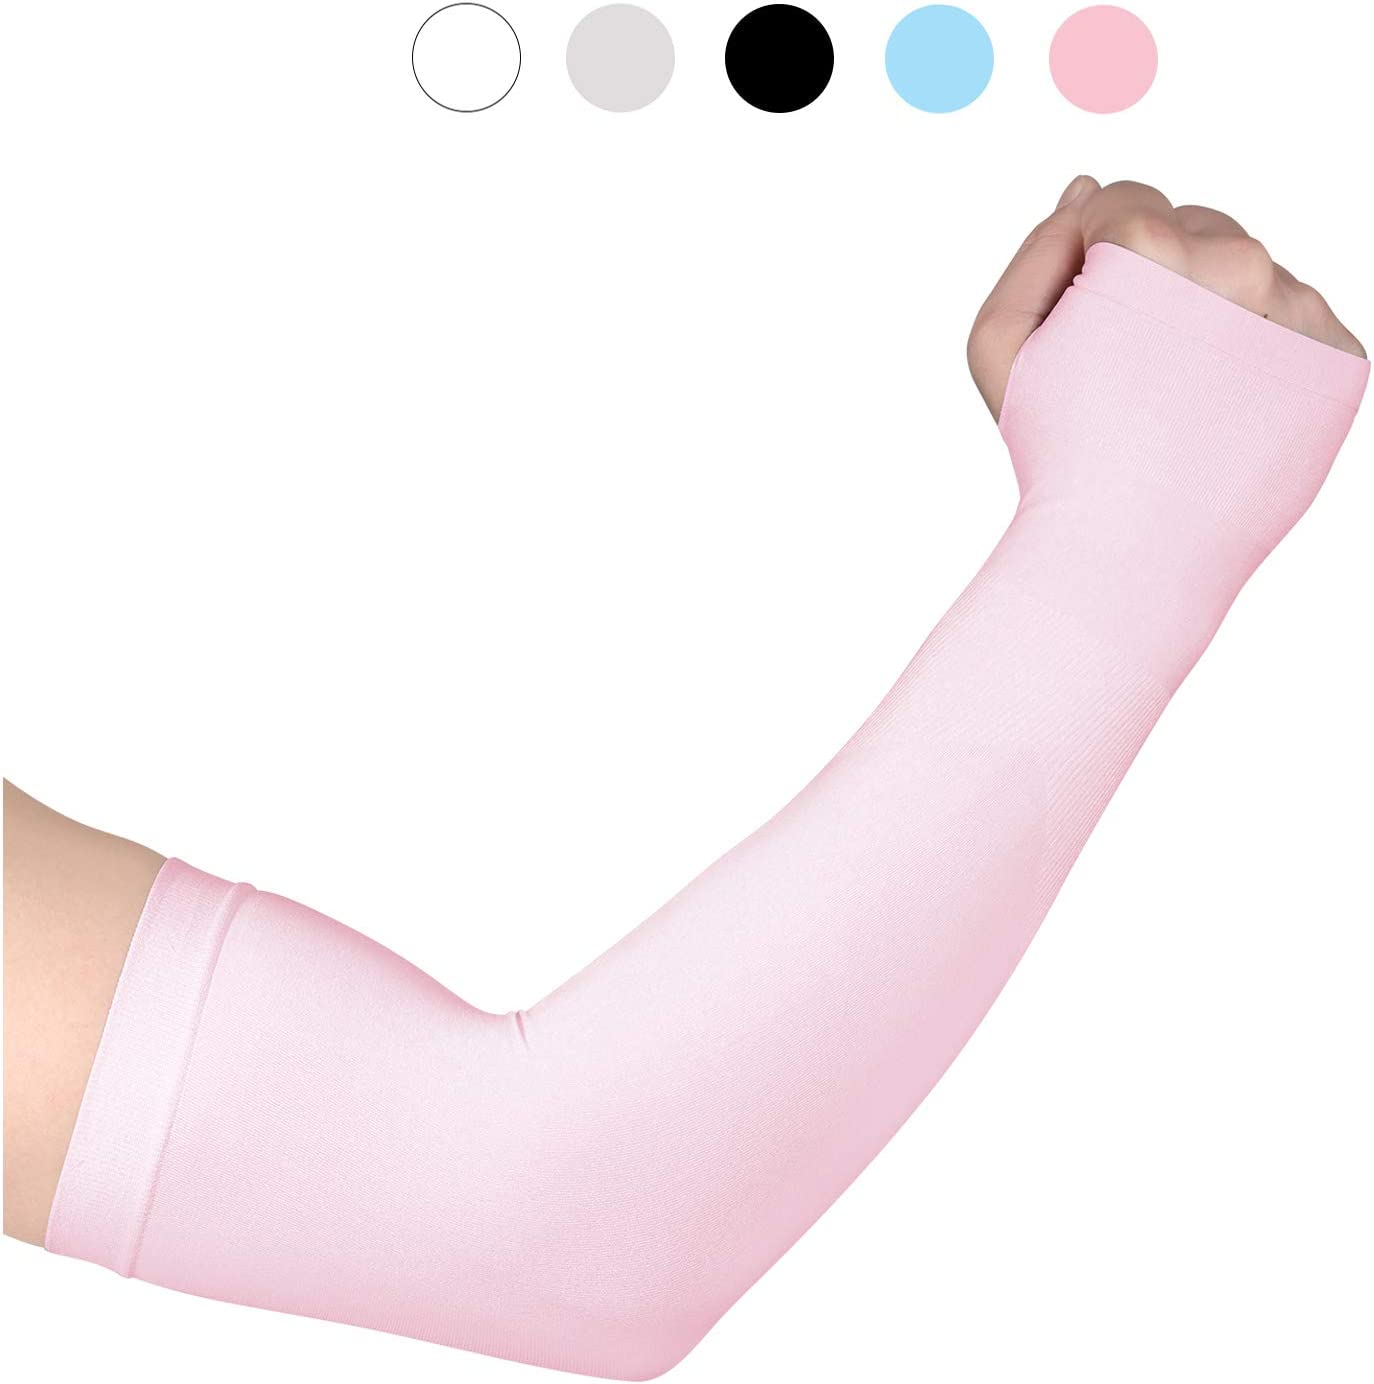 Fycert Sun Protection Anti UV Arm Sleeve Cover Tattoo Protect The Arm Elastic Breathable Ice Silk Sleeves for Outdoor Sports 1 Pair/3 Pairs